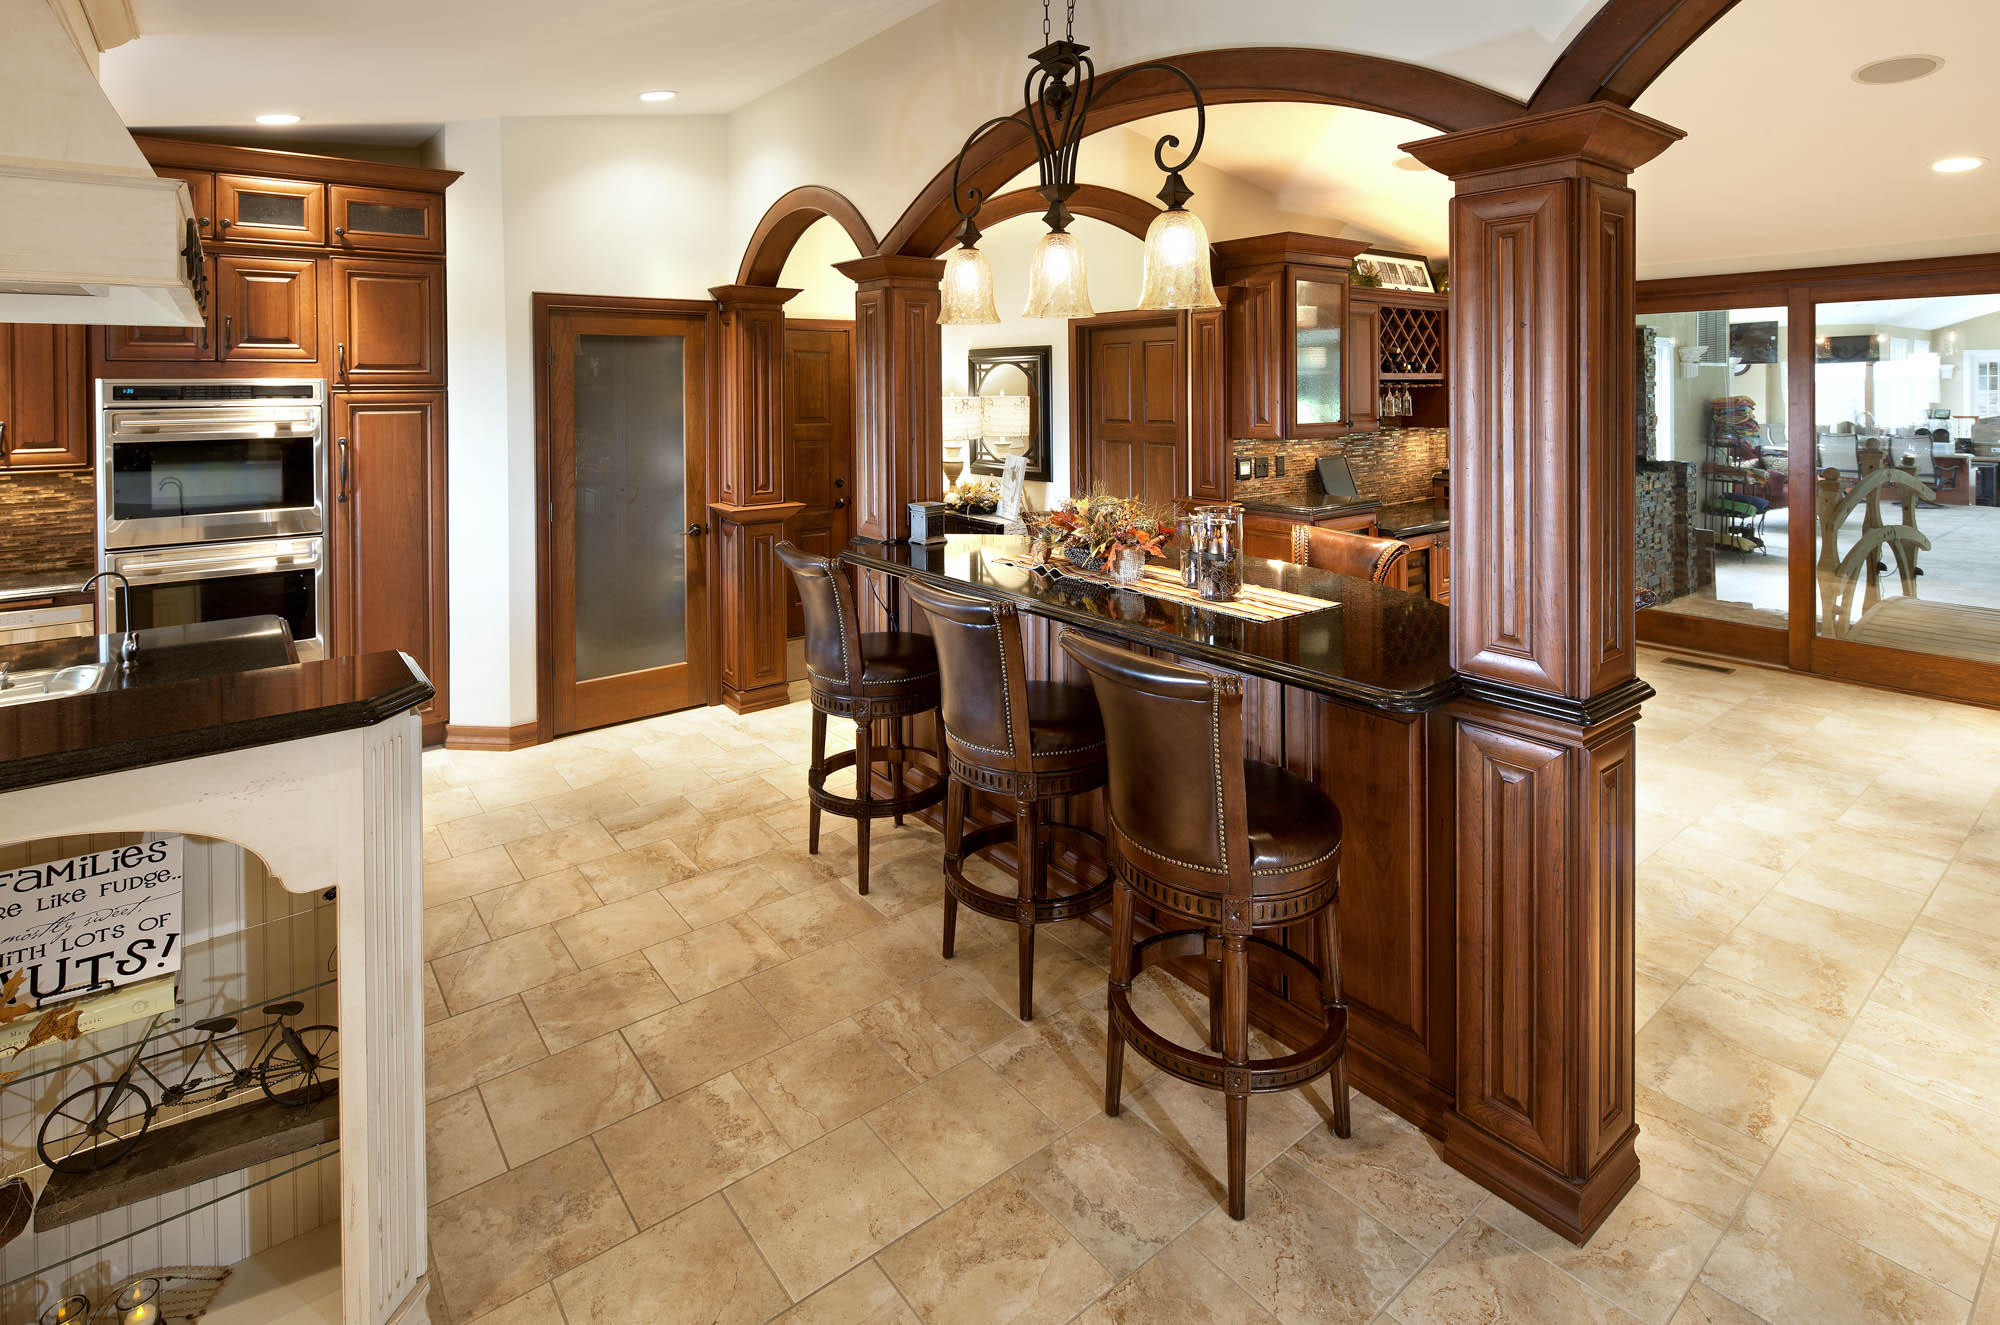 Stained kitchen room divider cabinets in Vintage Autumn by Showplace Cabinetry - view 1